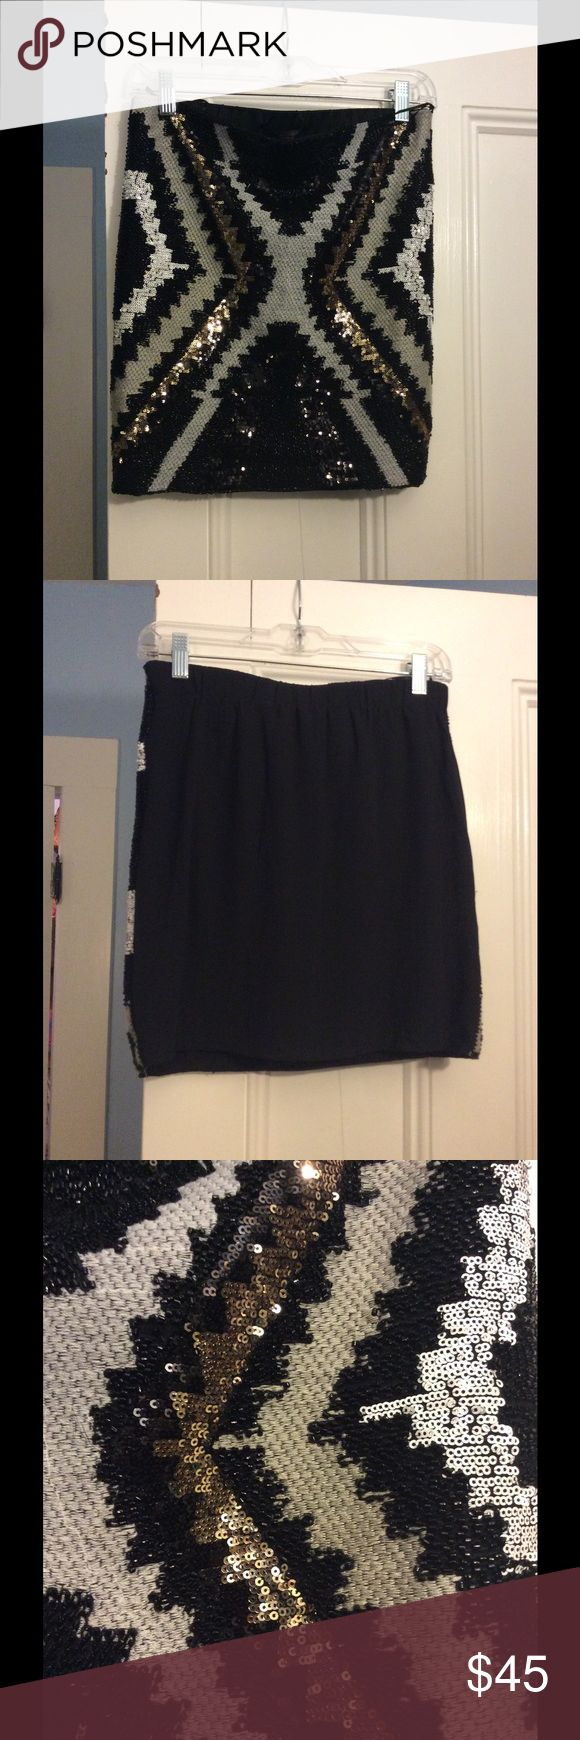 Gorgeous sequin skirt by Romeo & Juliet Couture. The perfect girls night out skirt!  I love this, but it's been sitting in my closet, unworn.  Blasphemy!  Give it the home it deserves!  All sequins intact. Romeo & Juliet Couture Skirts Mini